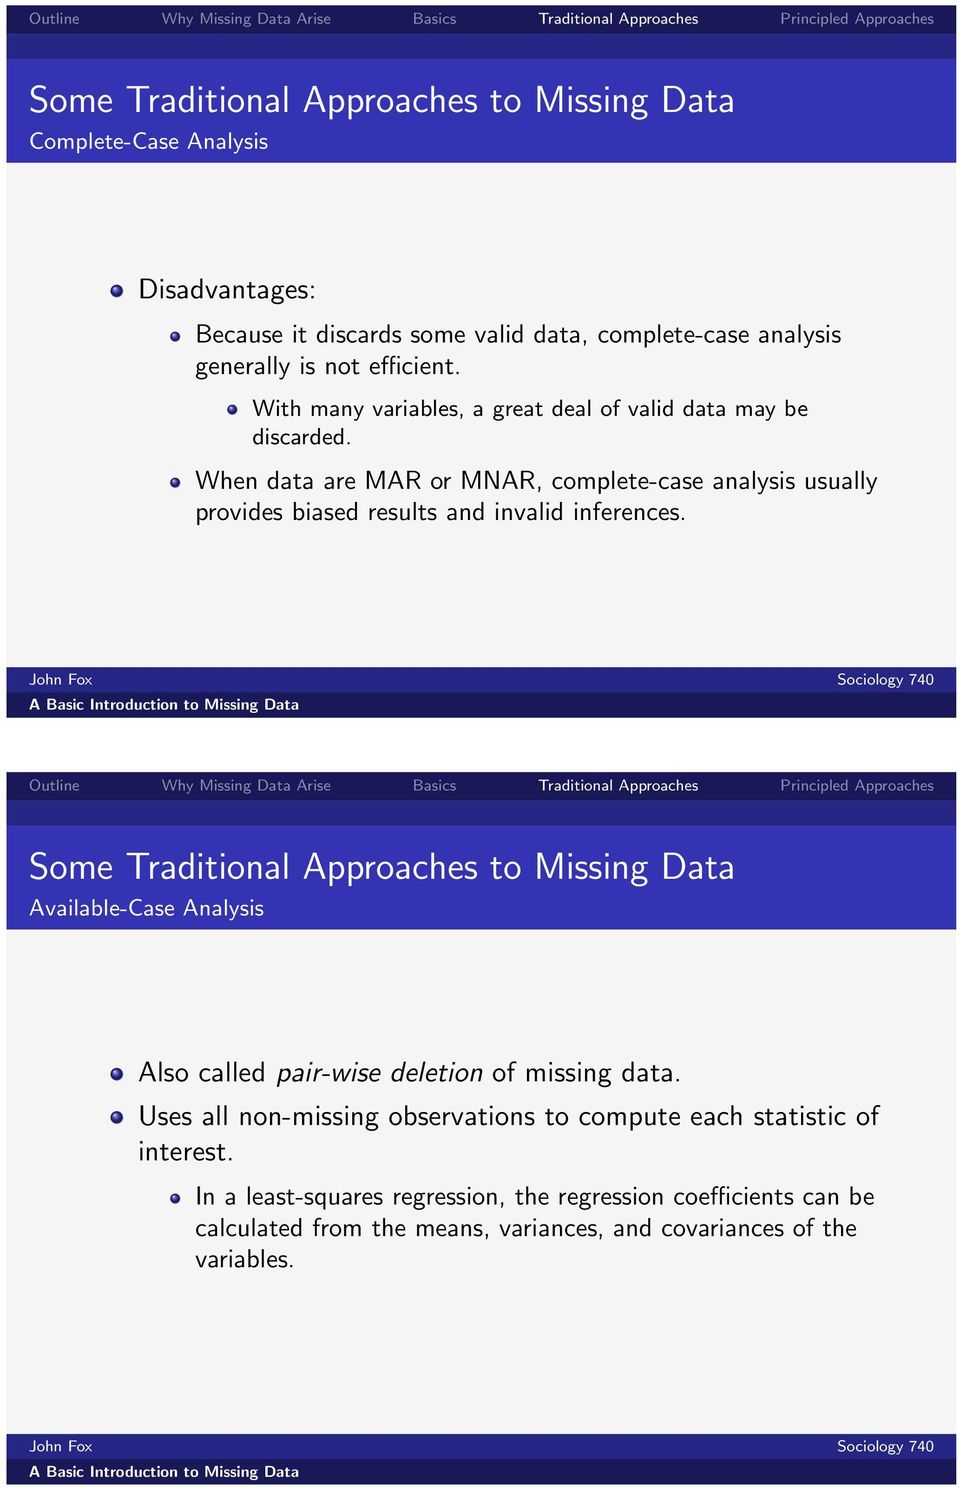 When data are MAR or MNAR, complete-case analysis usually provides biased results and invalid inferences.